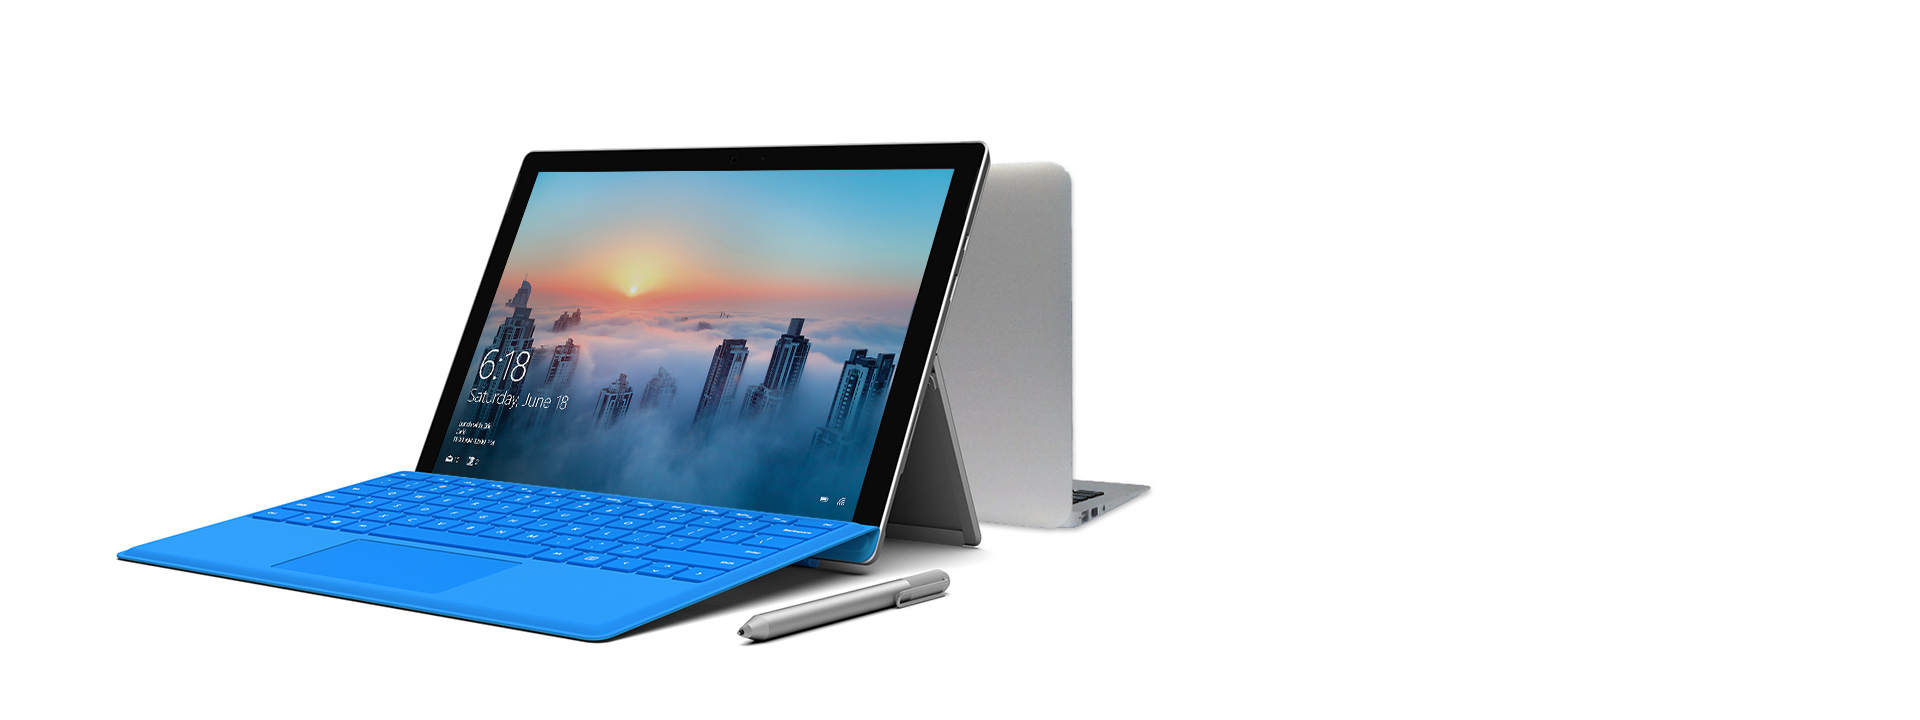 Surface Pro 4 and Macbook Pro positioned back-to-back with Surface Pen in the foreground